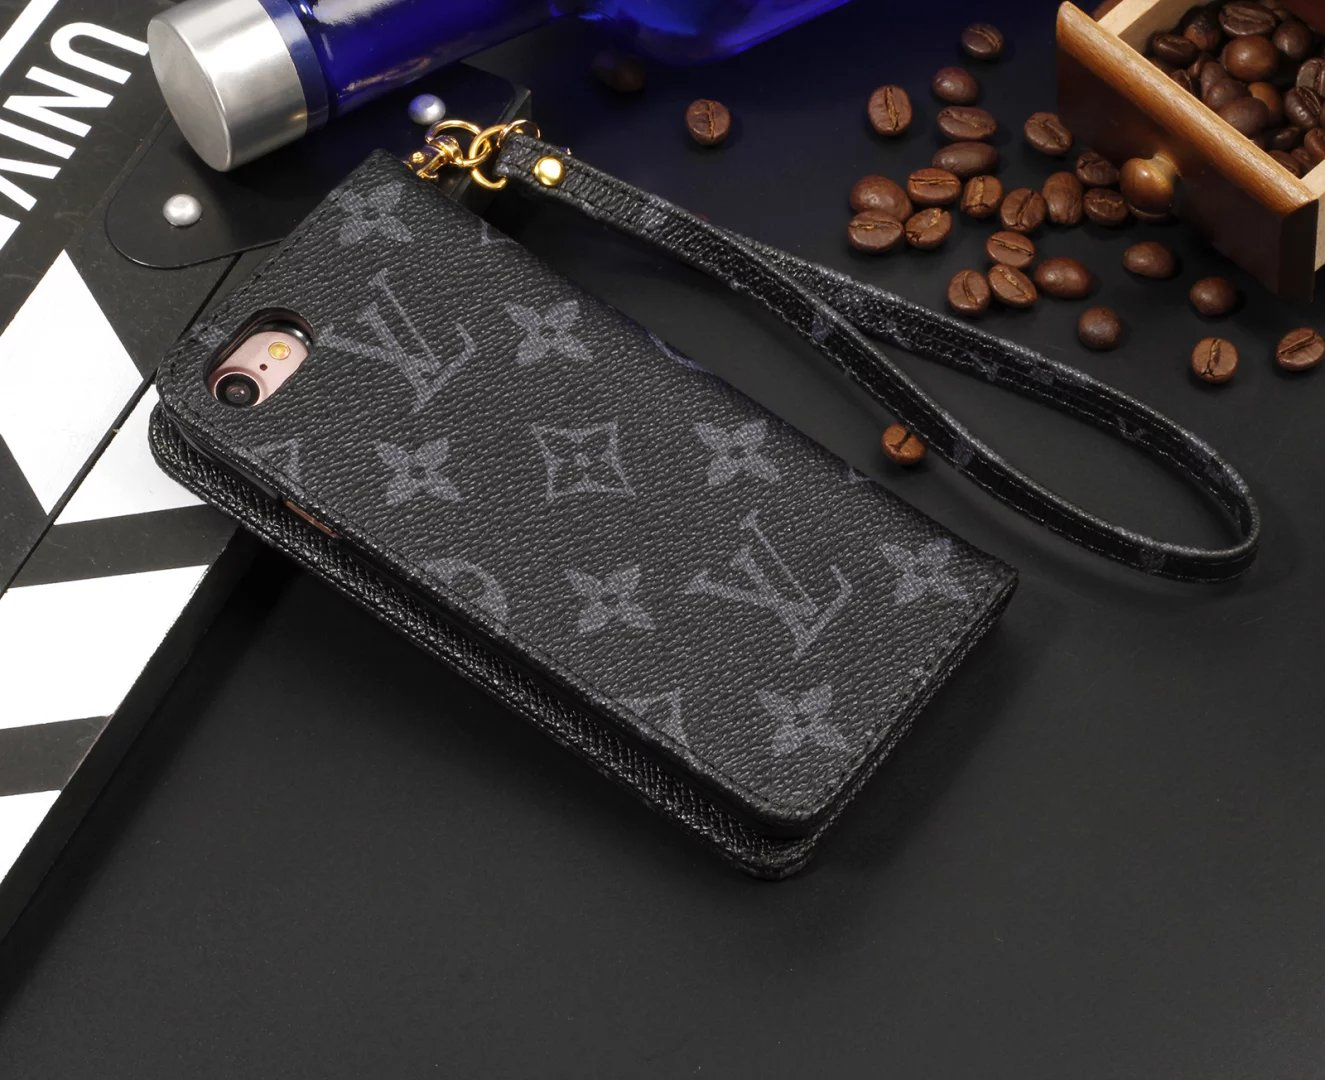 iphone handyhülle selbst gestalten beste iphone hülle Louis Vuitton iphone6s plus hülle tasche iphone 6s Plus ipod hülle eigene handyhülle machen eigene handyhülle entwerfen stoßfeste hülle iphone 6s Plus iphone 6s Plus a6s original